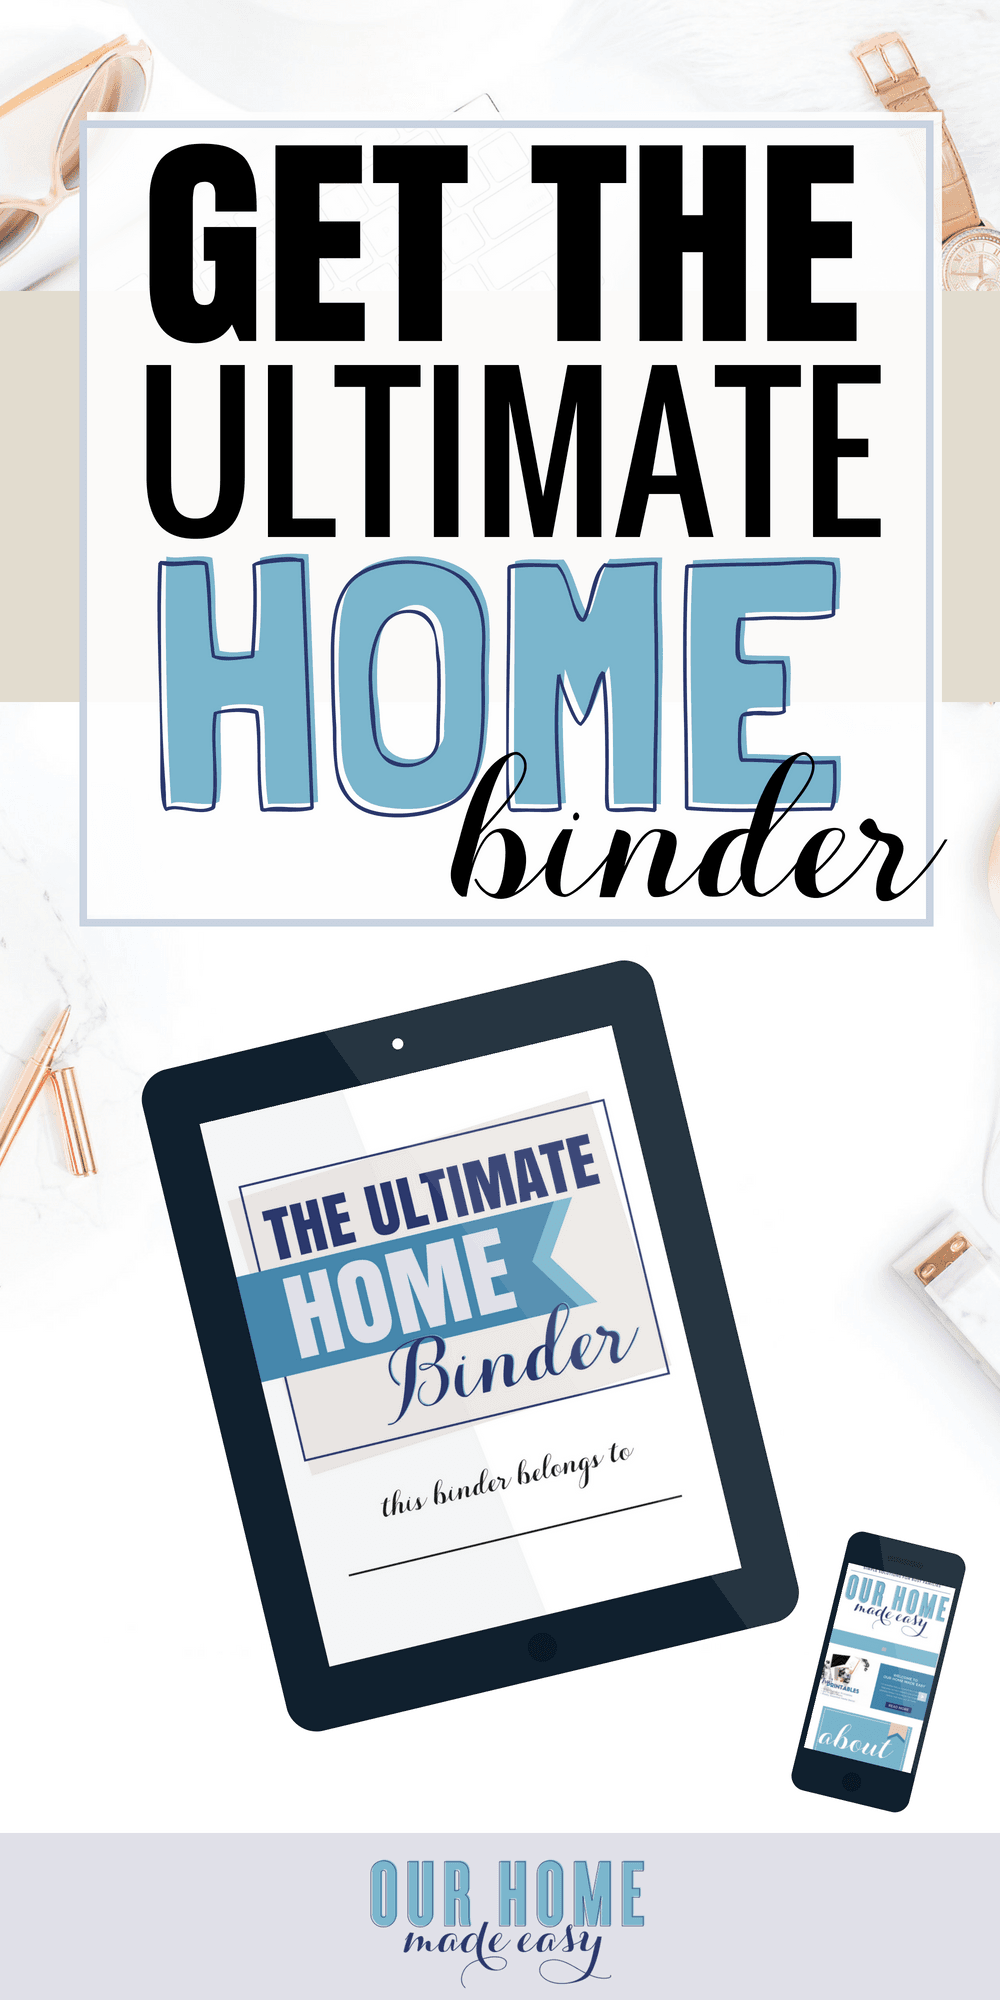 Are ready to organize your life at home? The Ultimate Home Binder will empower you to take control of your home and create your perfect 'one-stop' shop!